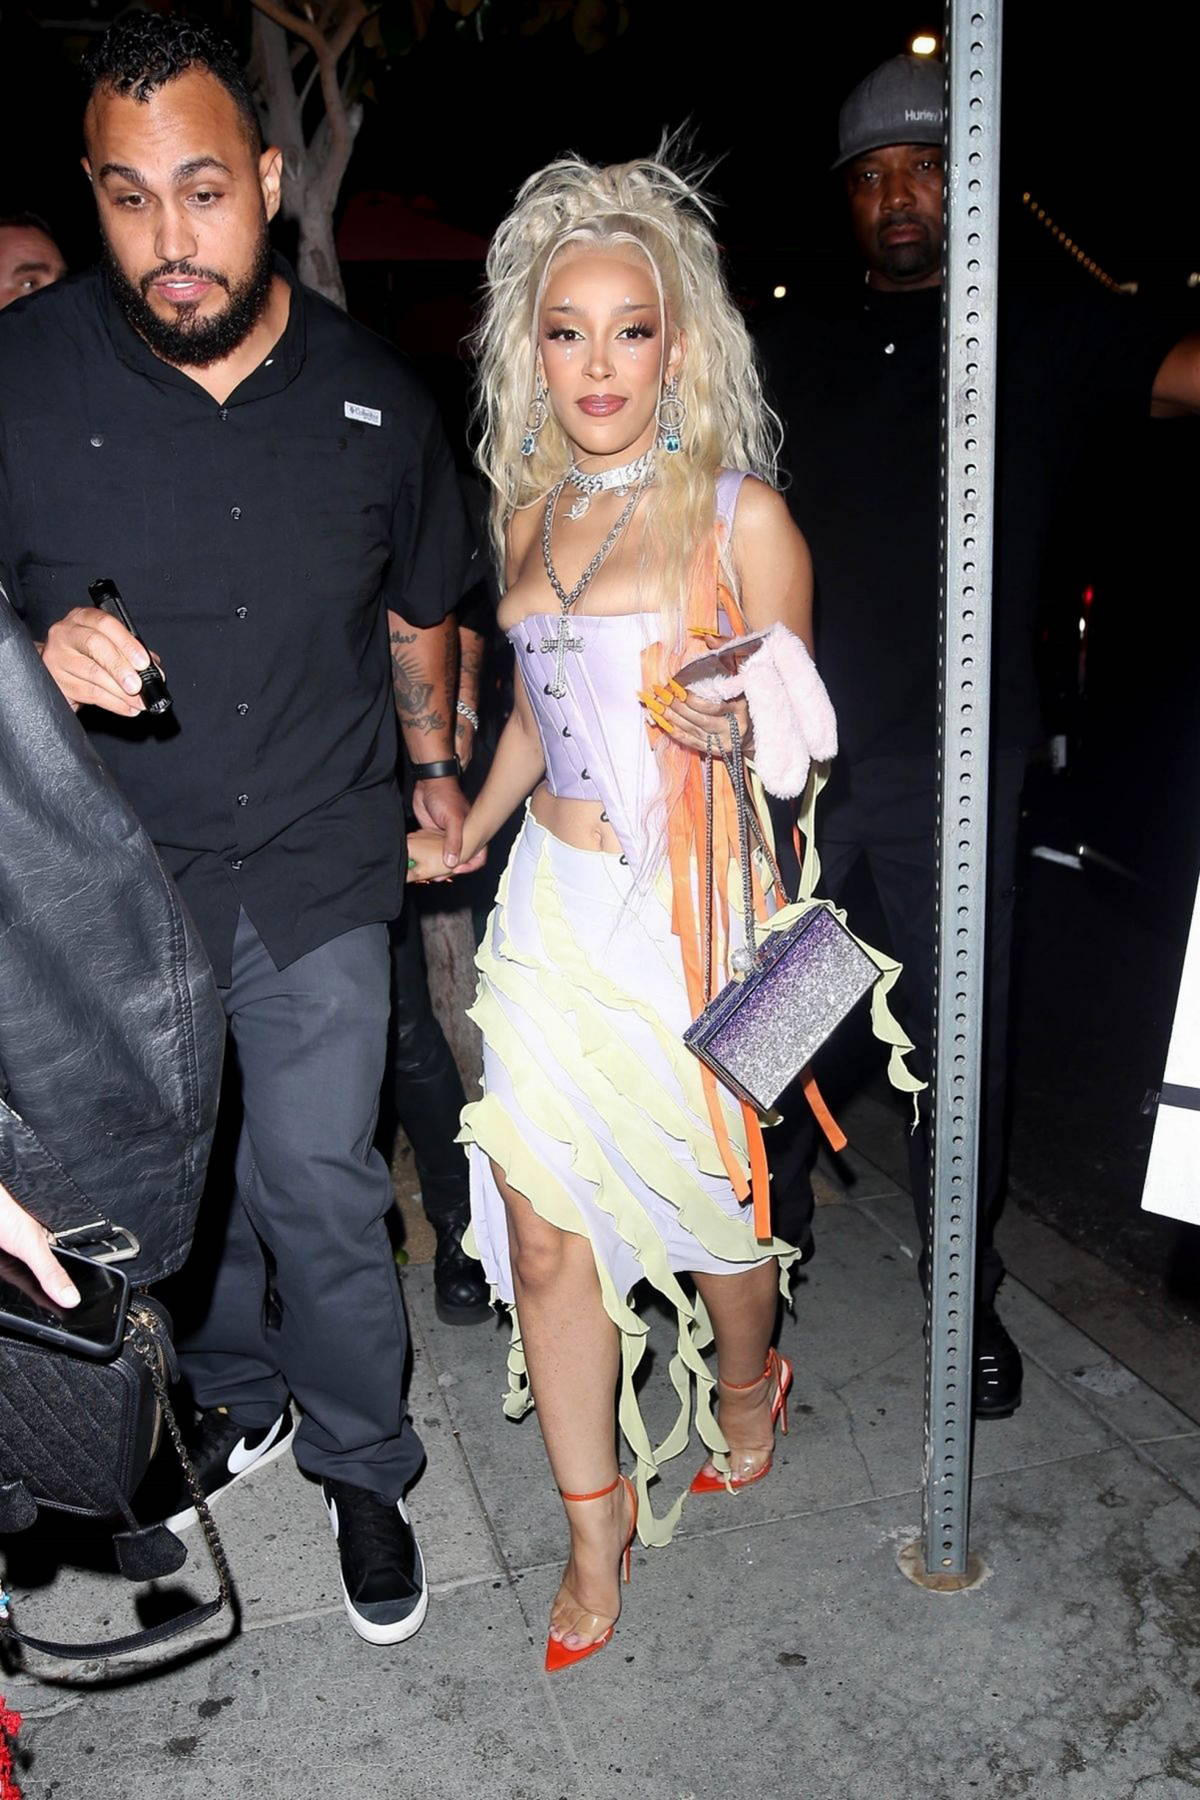 Doja Cat attends her 'Planet Her' album release party in Los Angeles